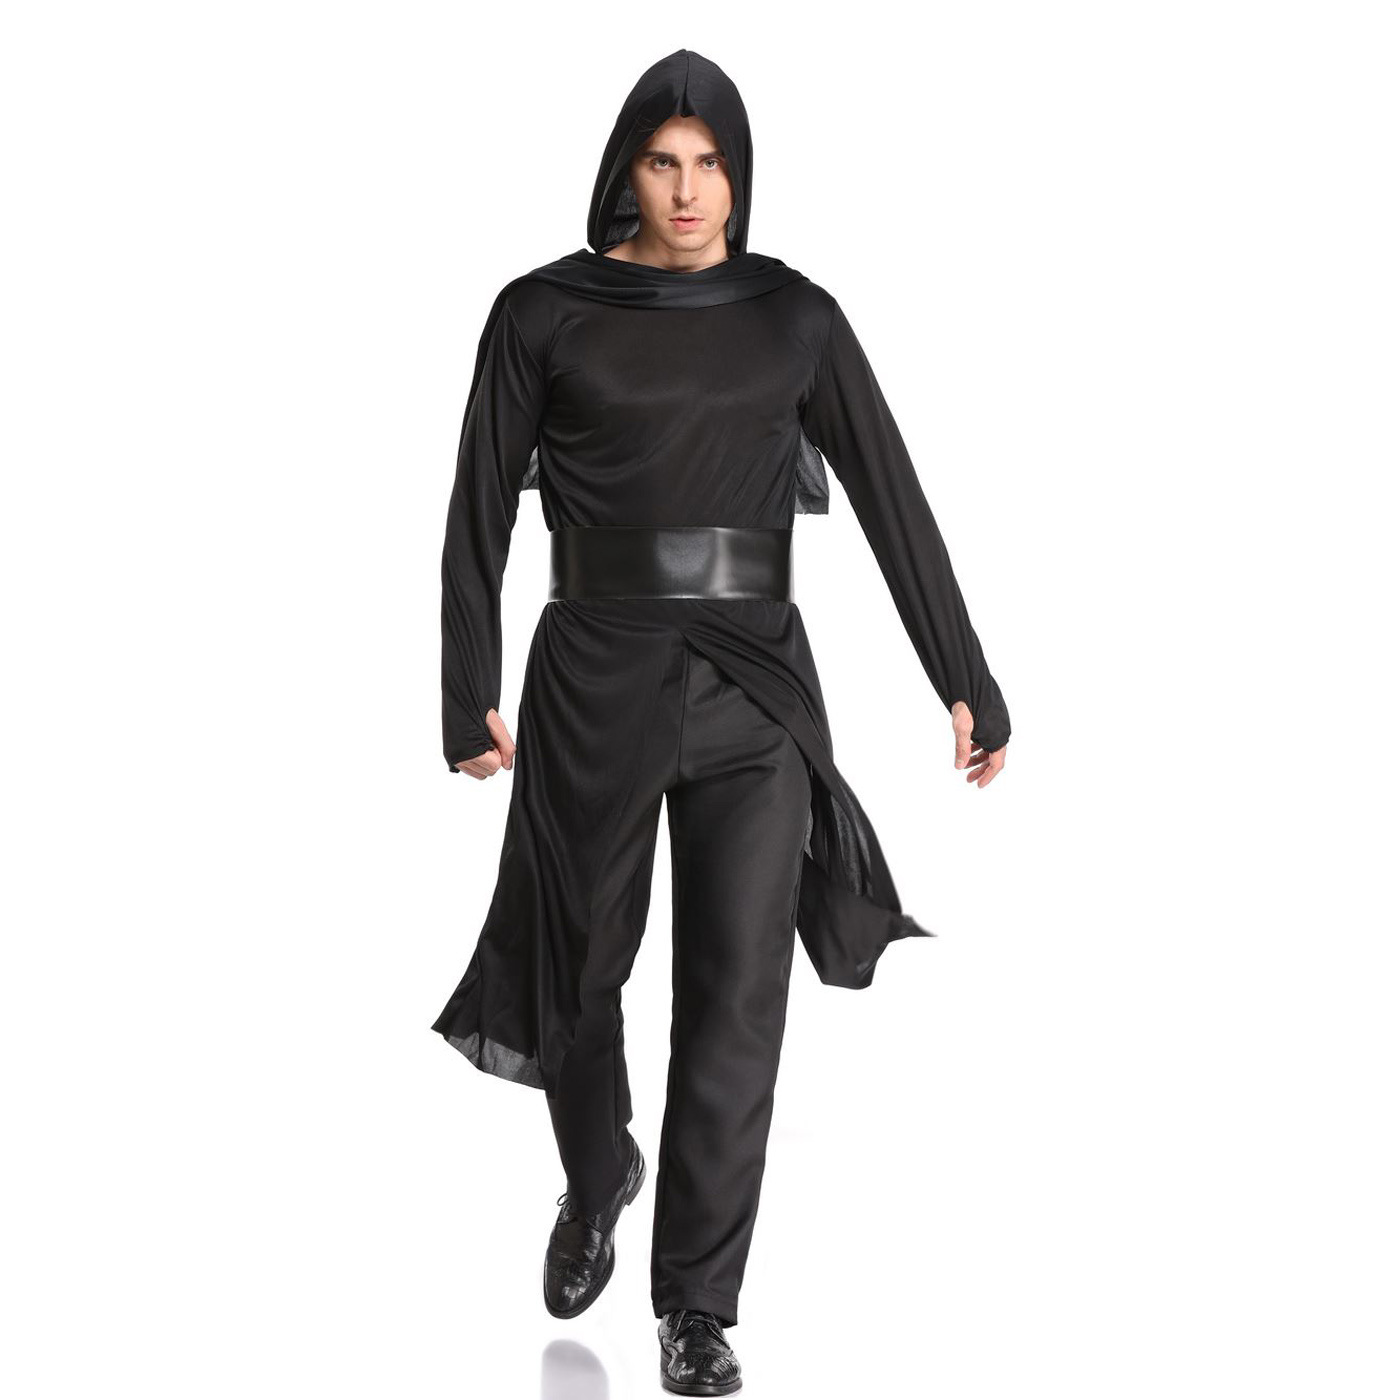 Costumes for adults, mens clothes, Ninja Warriors, role playing costumes, COSPLAY Samurai costumes, performance costumes